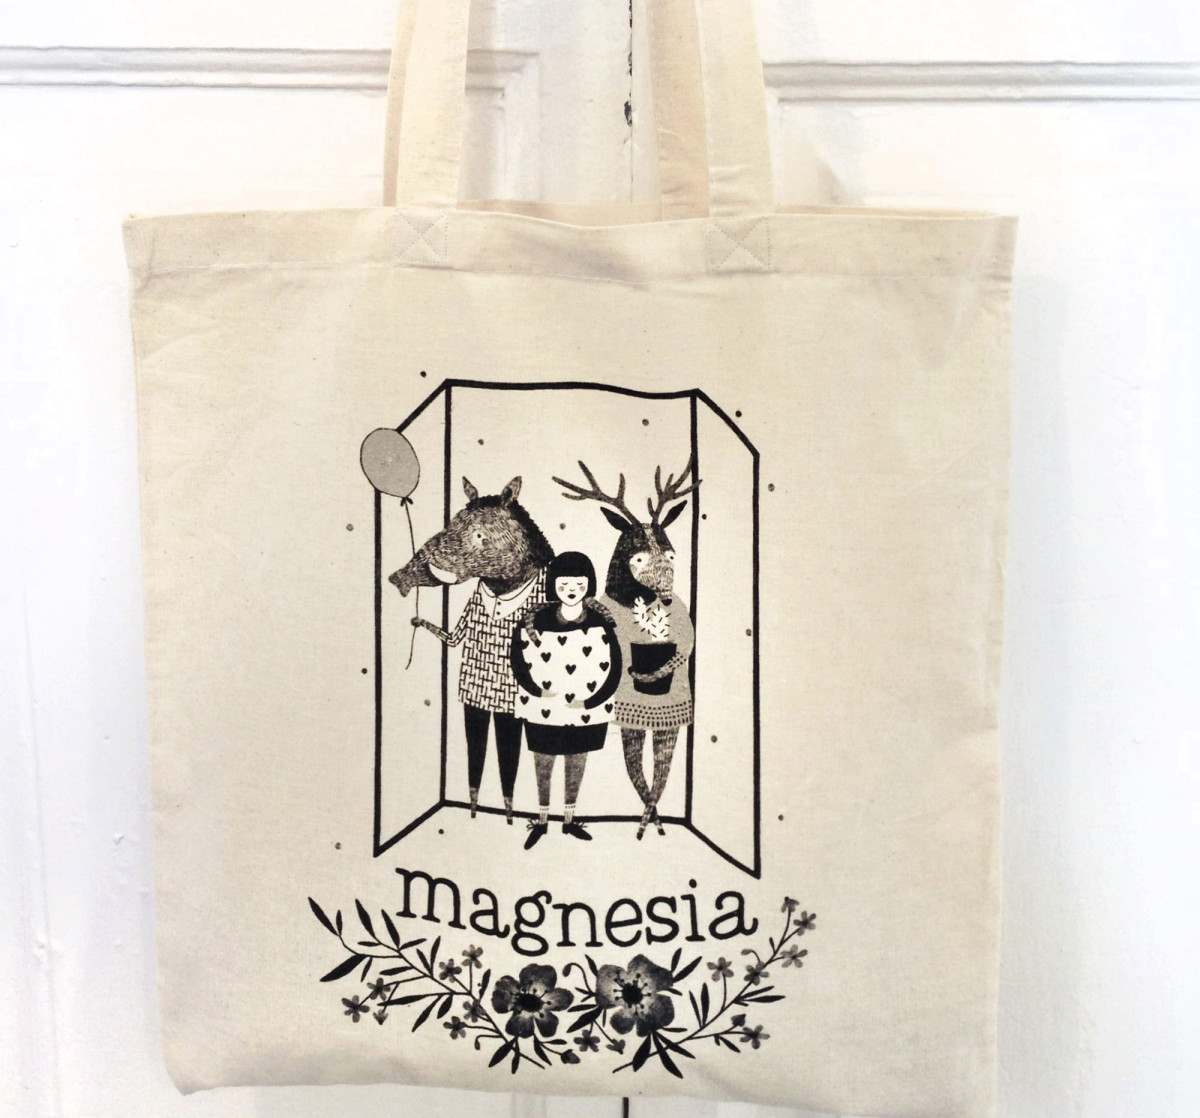 Magnesia_bag_Liekeland_illustration_2000pix